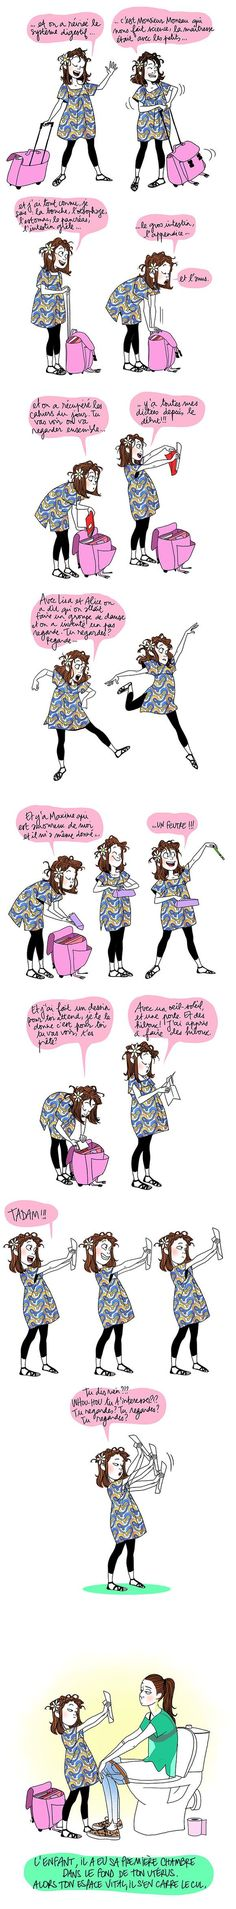 Lintimit qd on est maman cest a. et cest tellement vrai ! Dirty Dancing, Haha, Girl Humor, Funny Cute, Make Me Smile, Illustration, Have Fun, Funny Pictures, Jokes